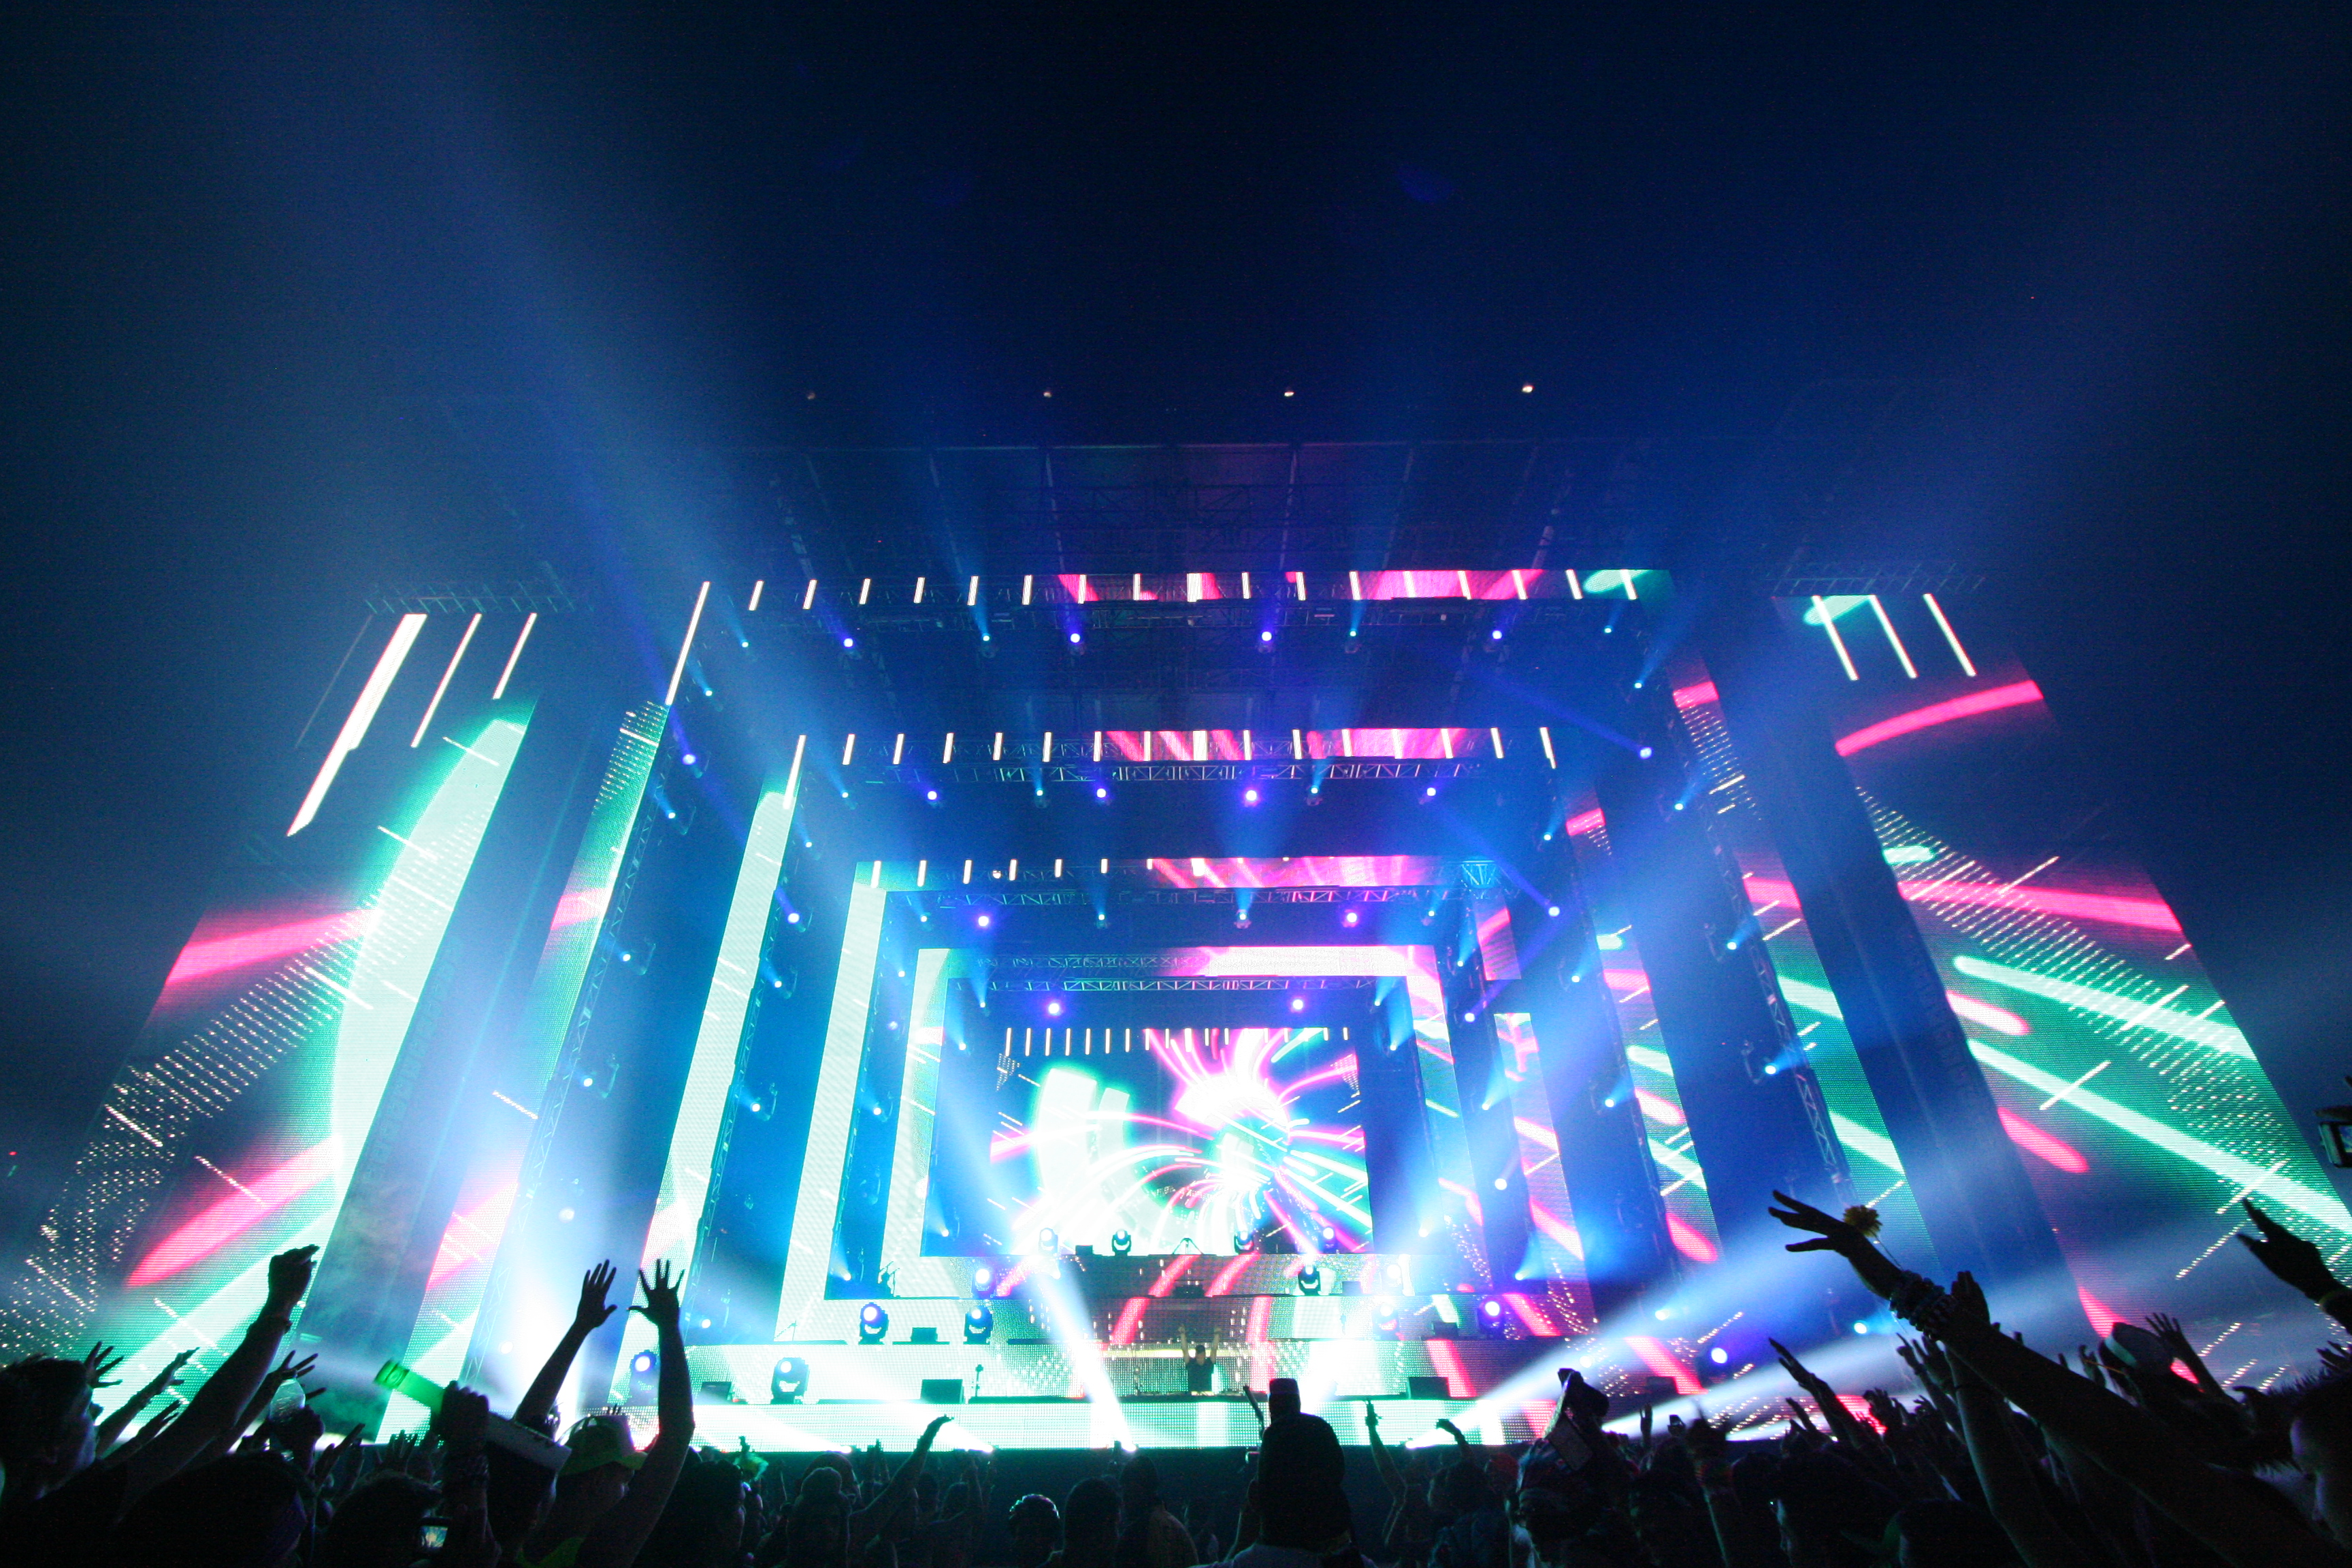 edm wallpaper,performance,stage,entertainment,concert,performing arts